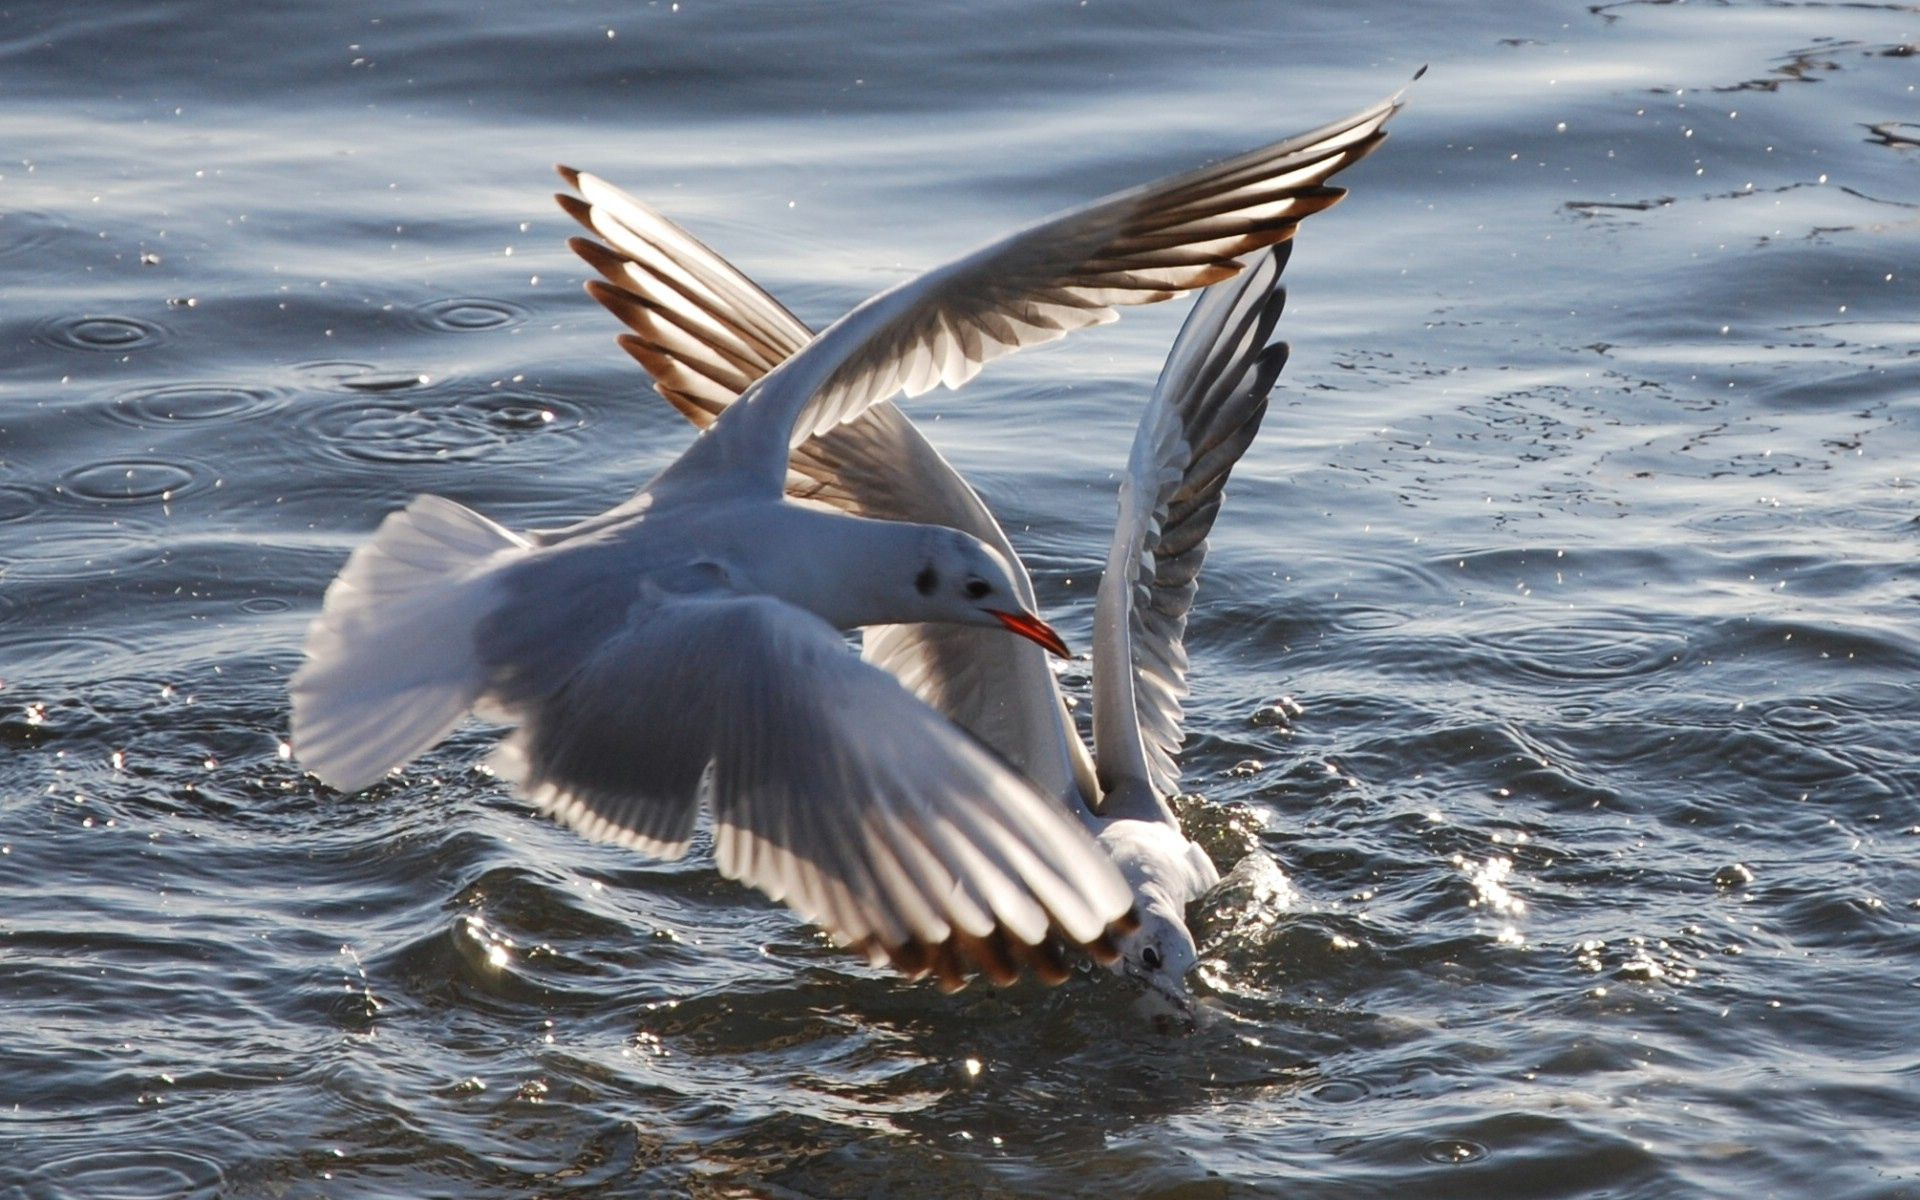 98716 download wallpaper Animals, Flight, Water, Sea, Birds, Seagulls screensavers and pictures for free